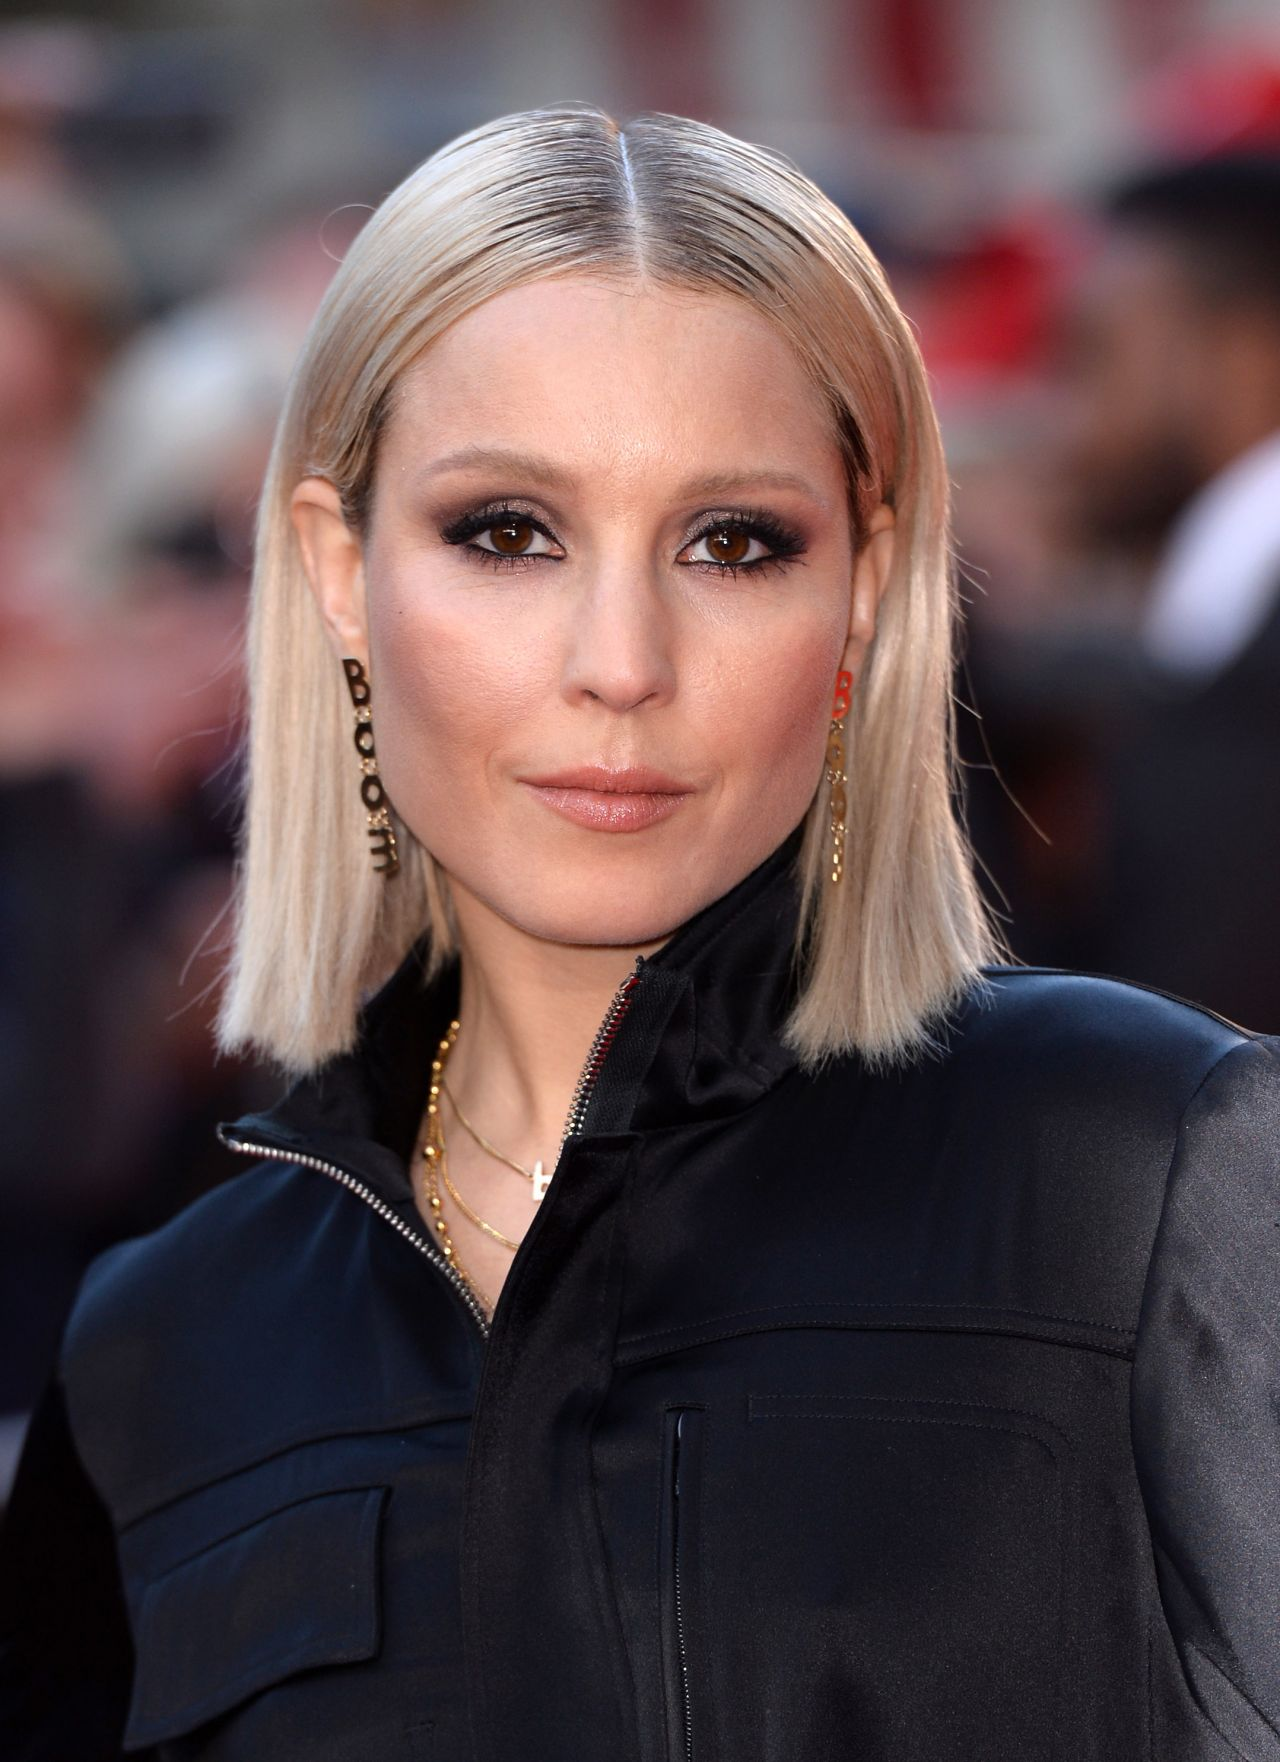 Noomi Rapace On Red Carpet The Drop Premiere 2014